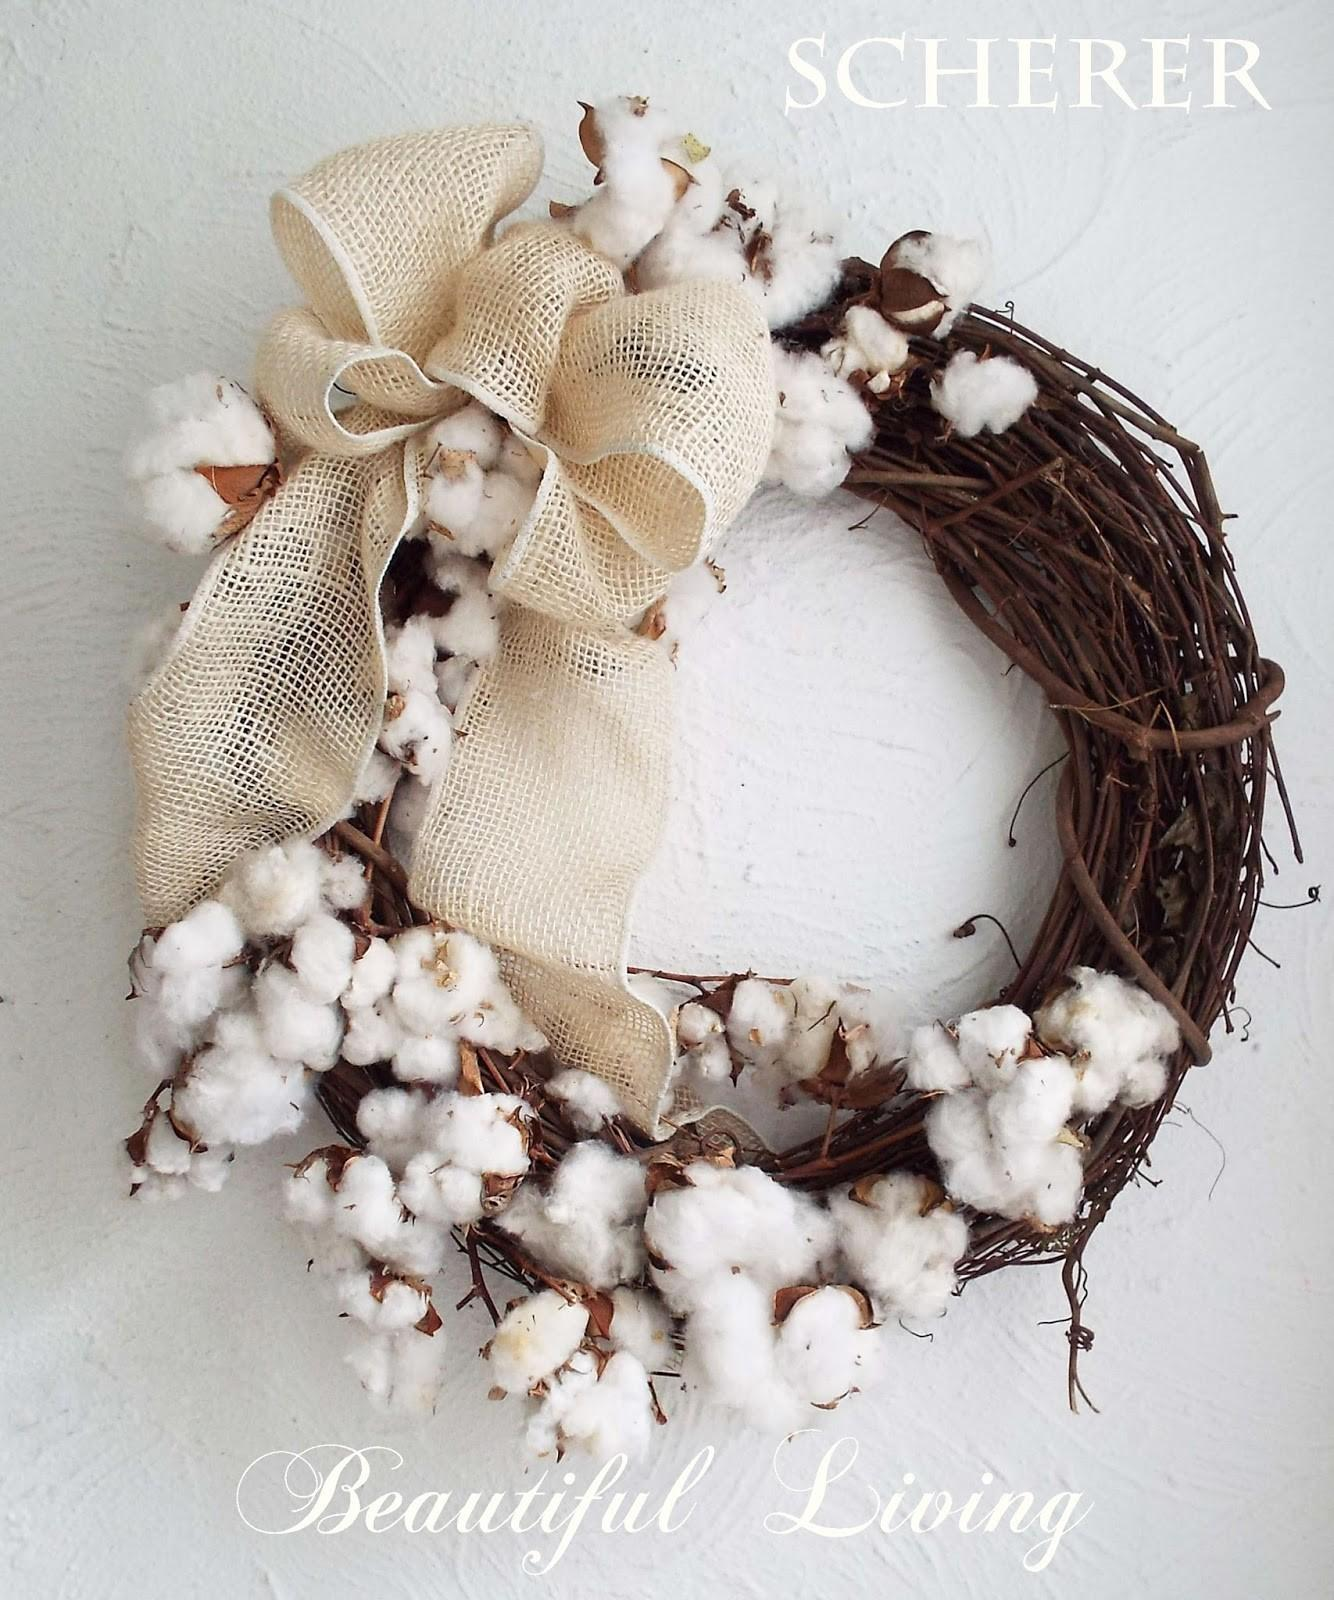 Lisa Scherer Art Decorating Cotton Plant Wreath Home